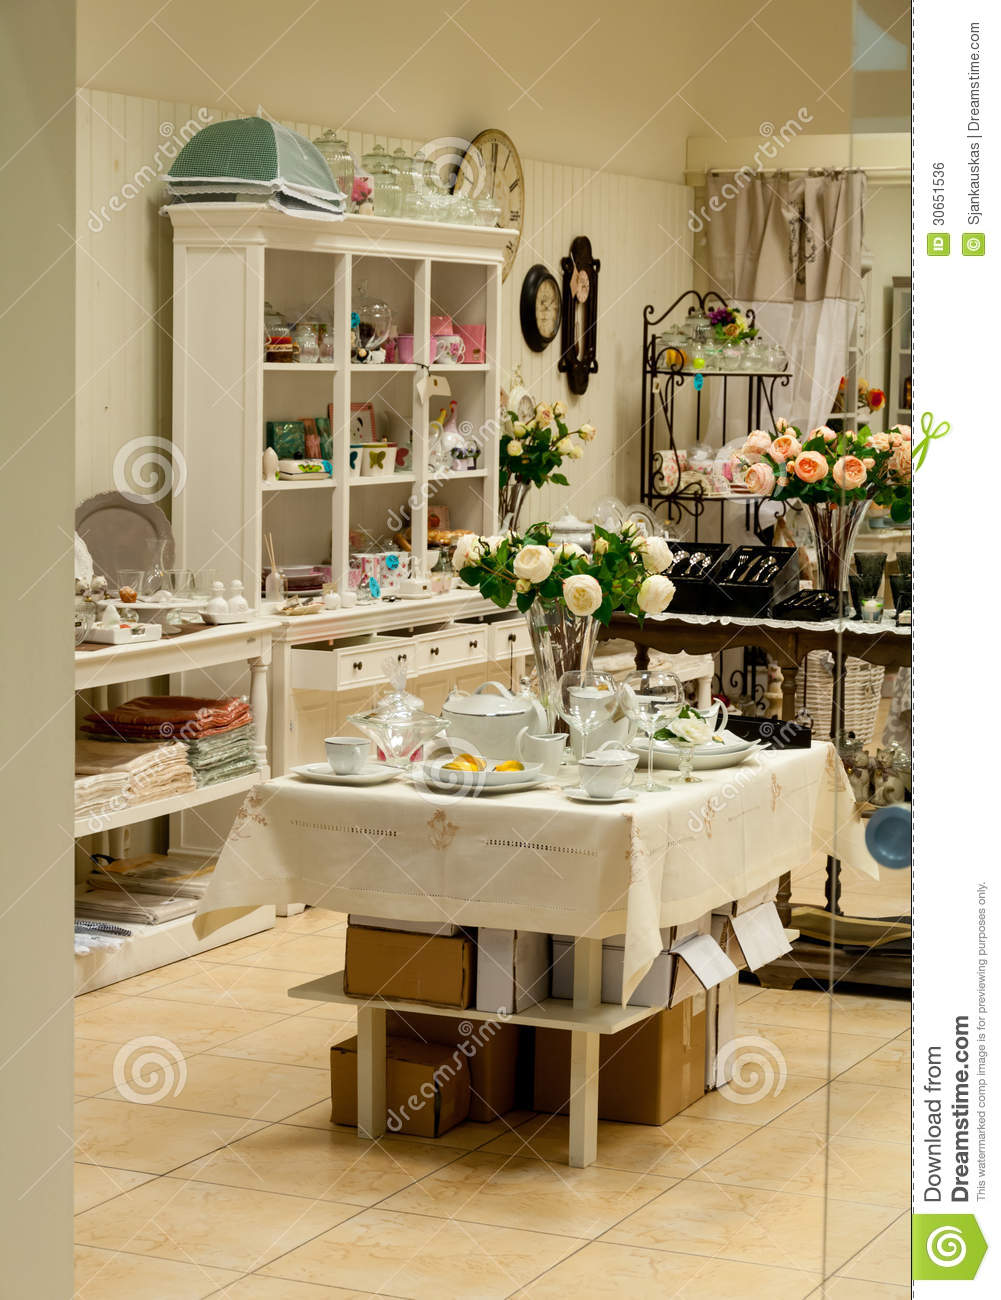 Delightful Home Decor And Dishes Shop